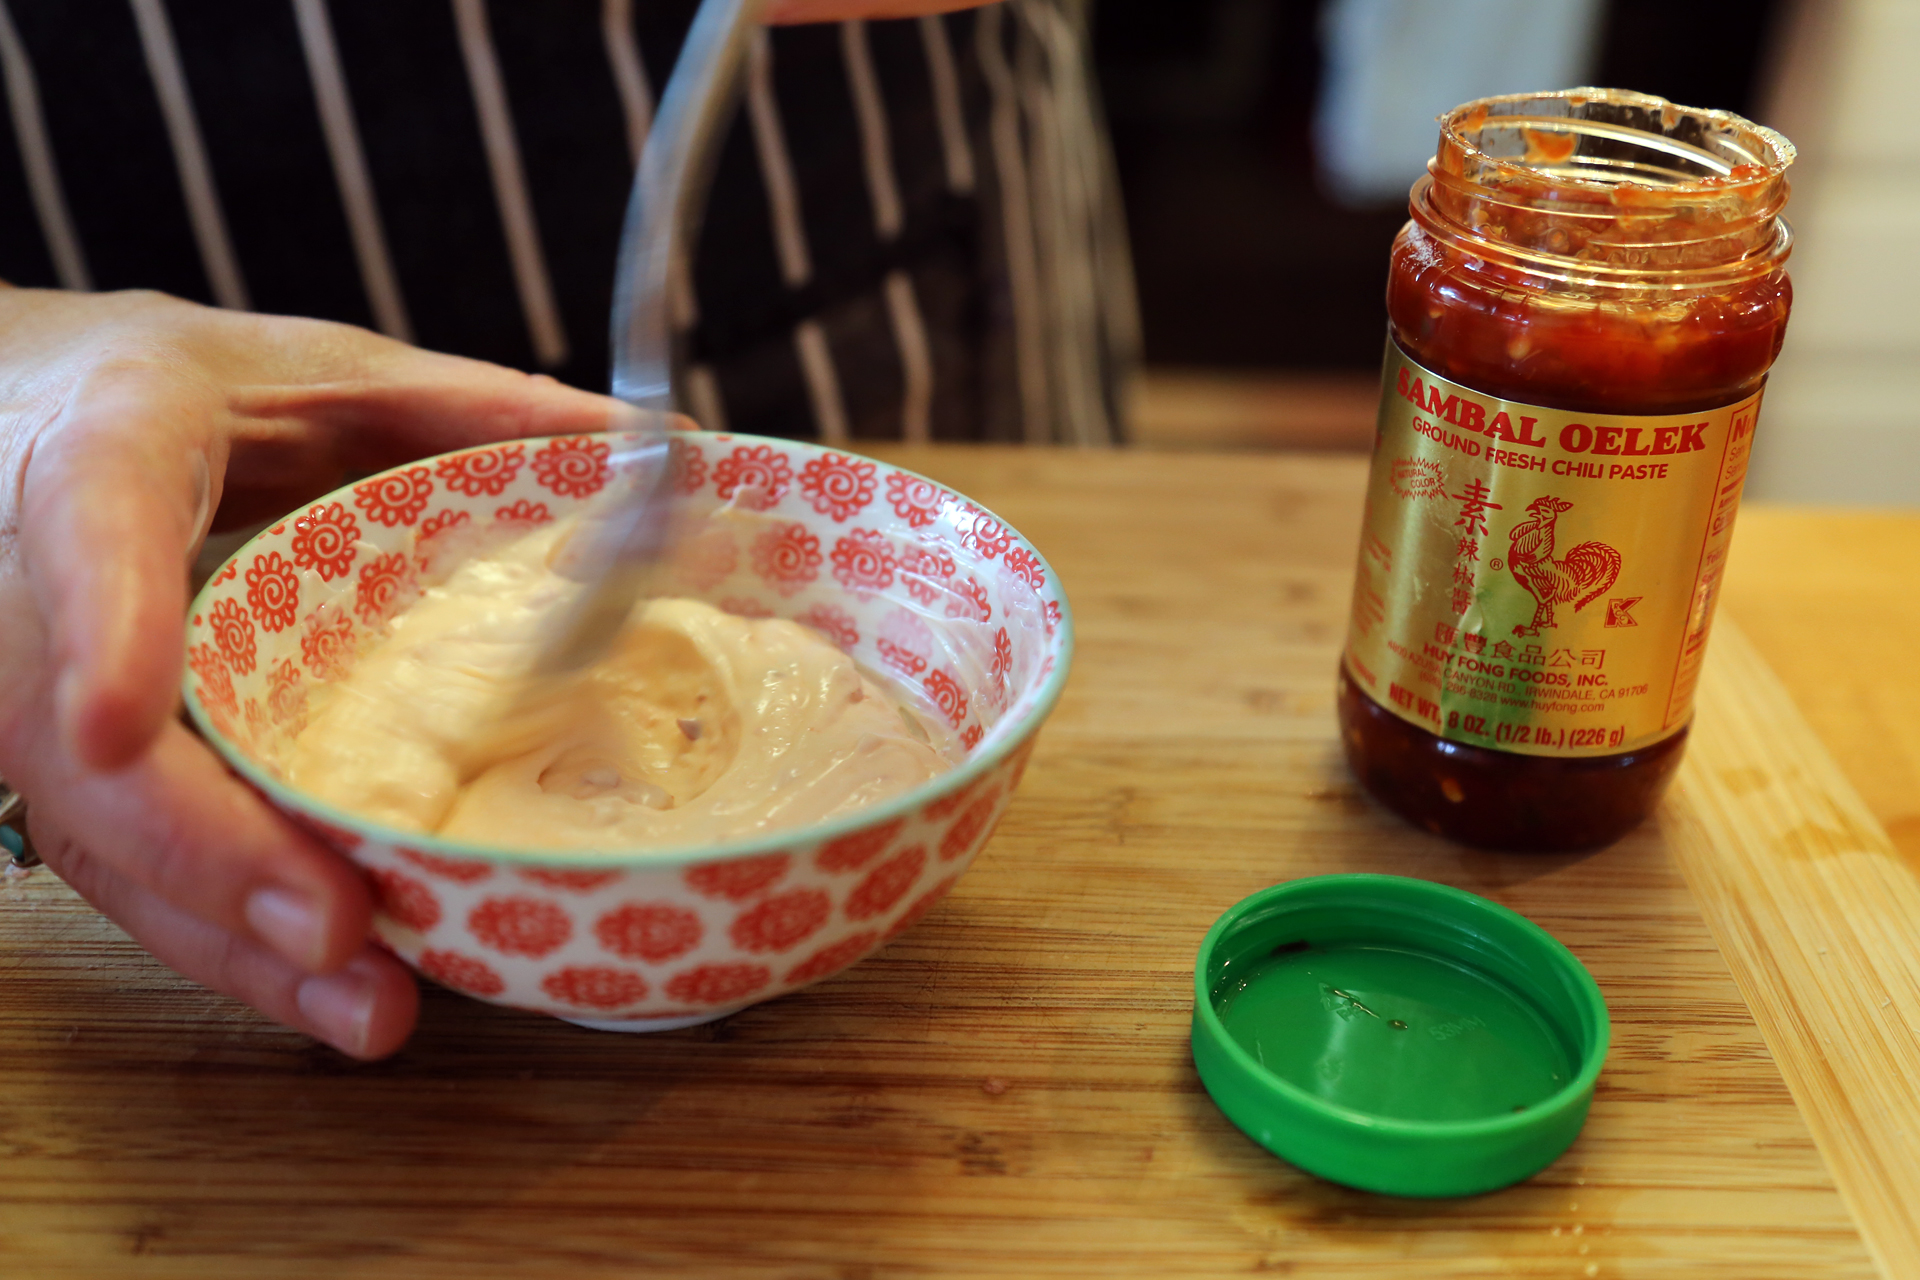 In another bowl, stir together the mayo and sambal oelek; cover and refrigerate.